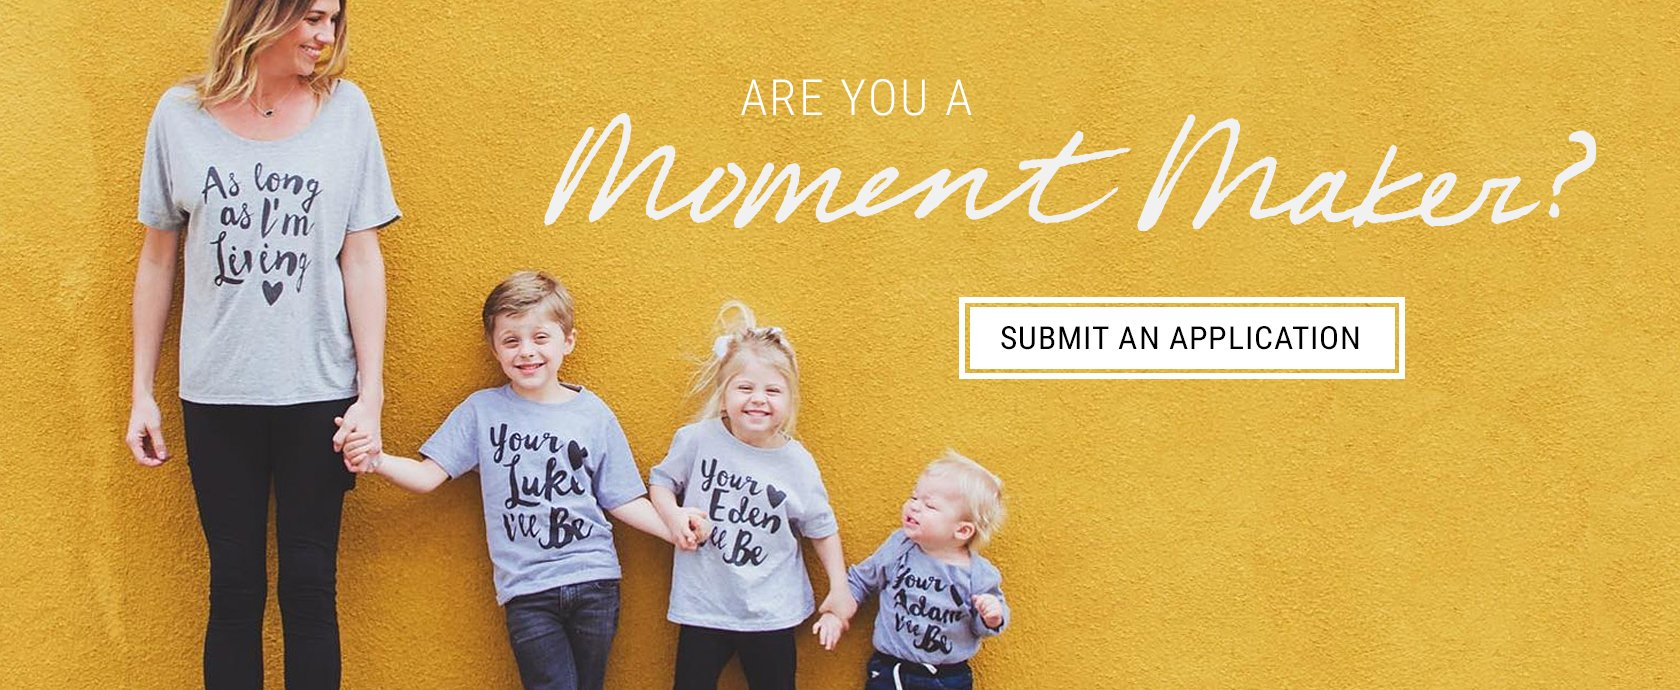 Are You A Moment Maker